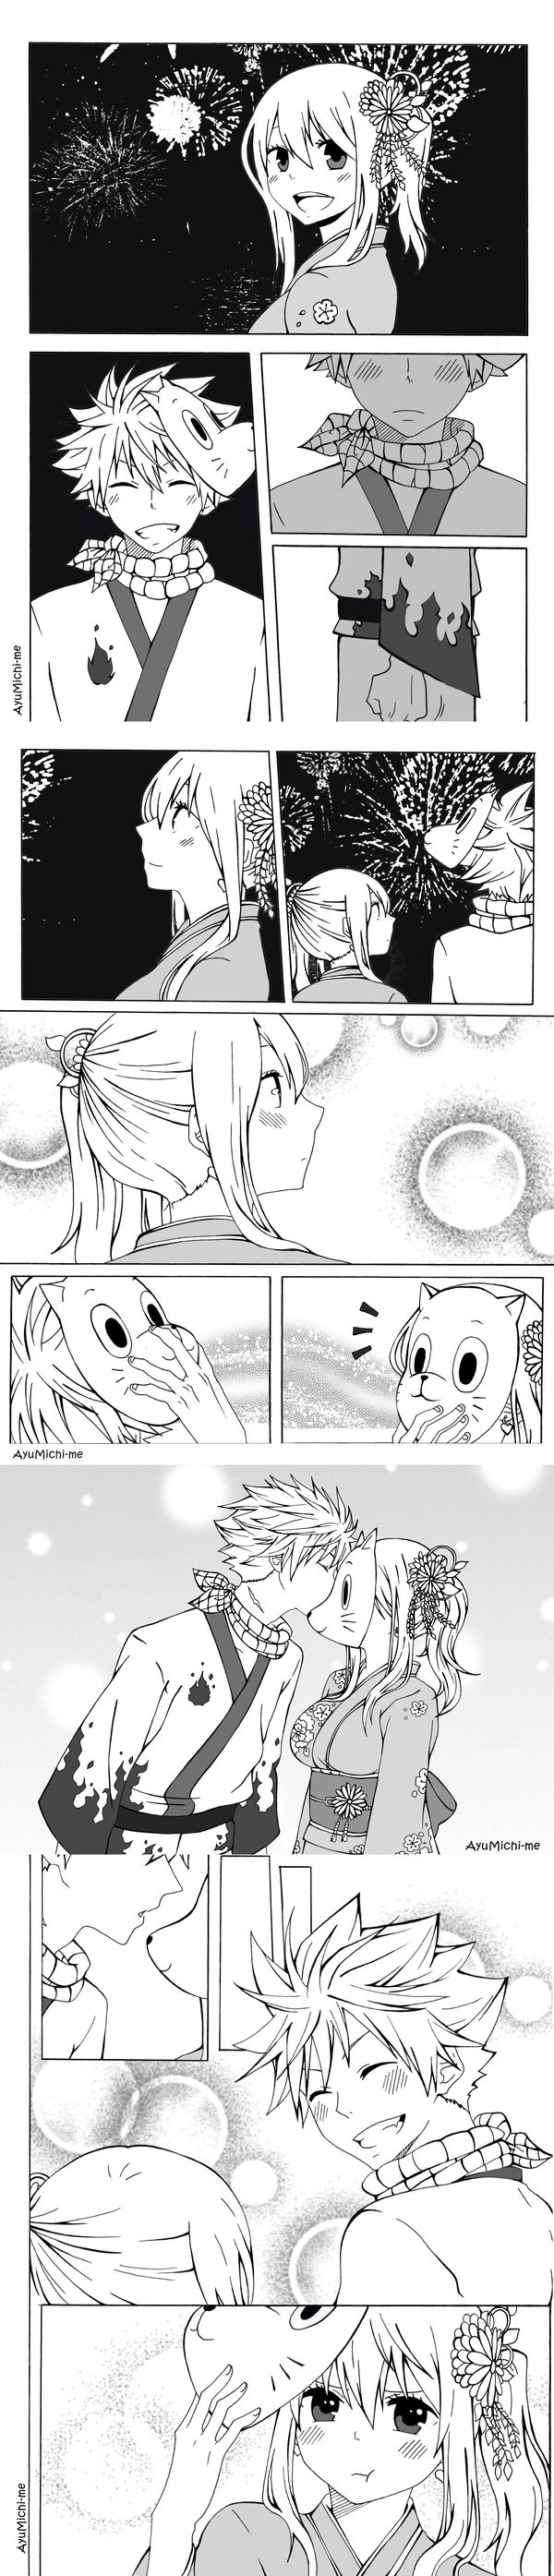 NaLu Fluff Week Prompt: Festival by AyuMichi-me on DeviantArt